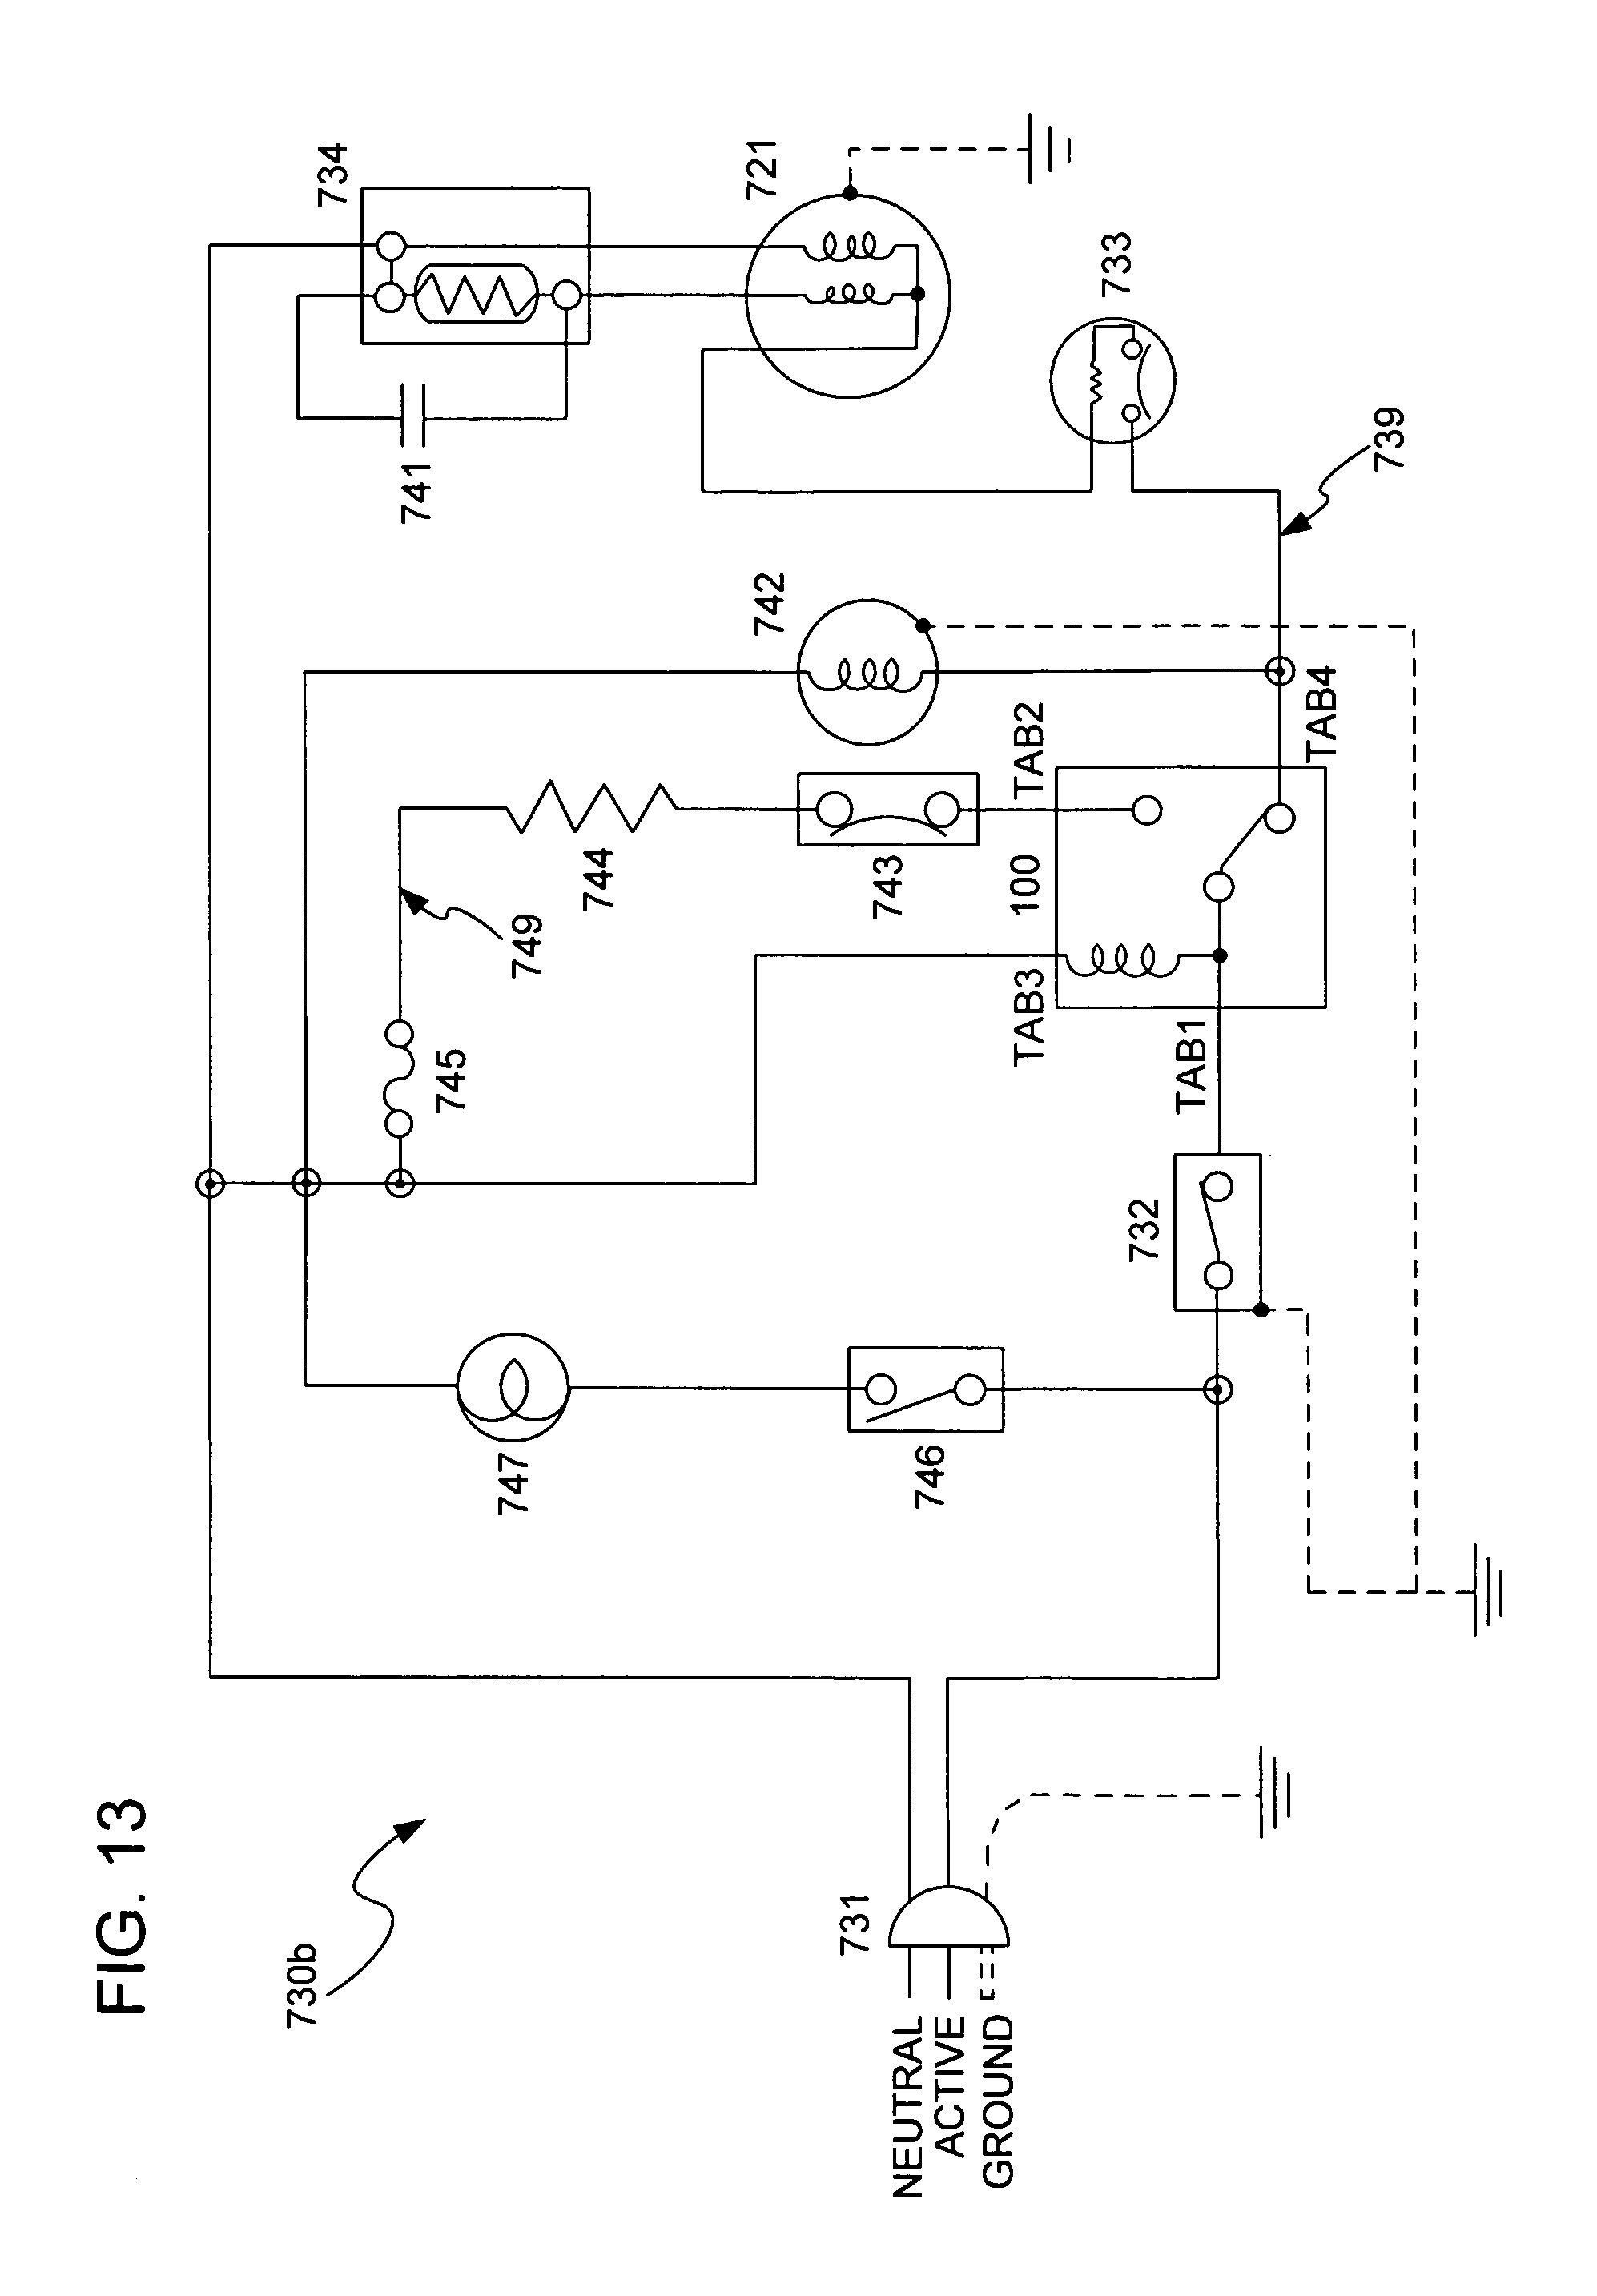 Collection Of Paragon Defrost Timer 8145 20 Wiring Diagram Download